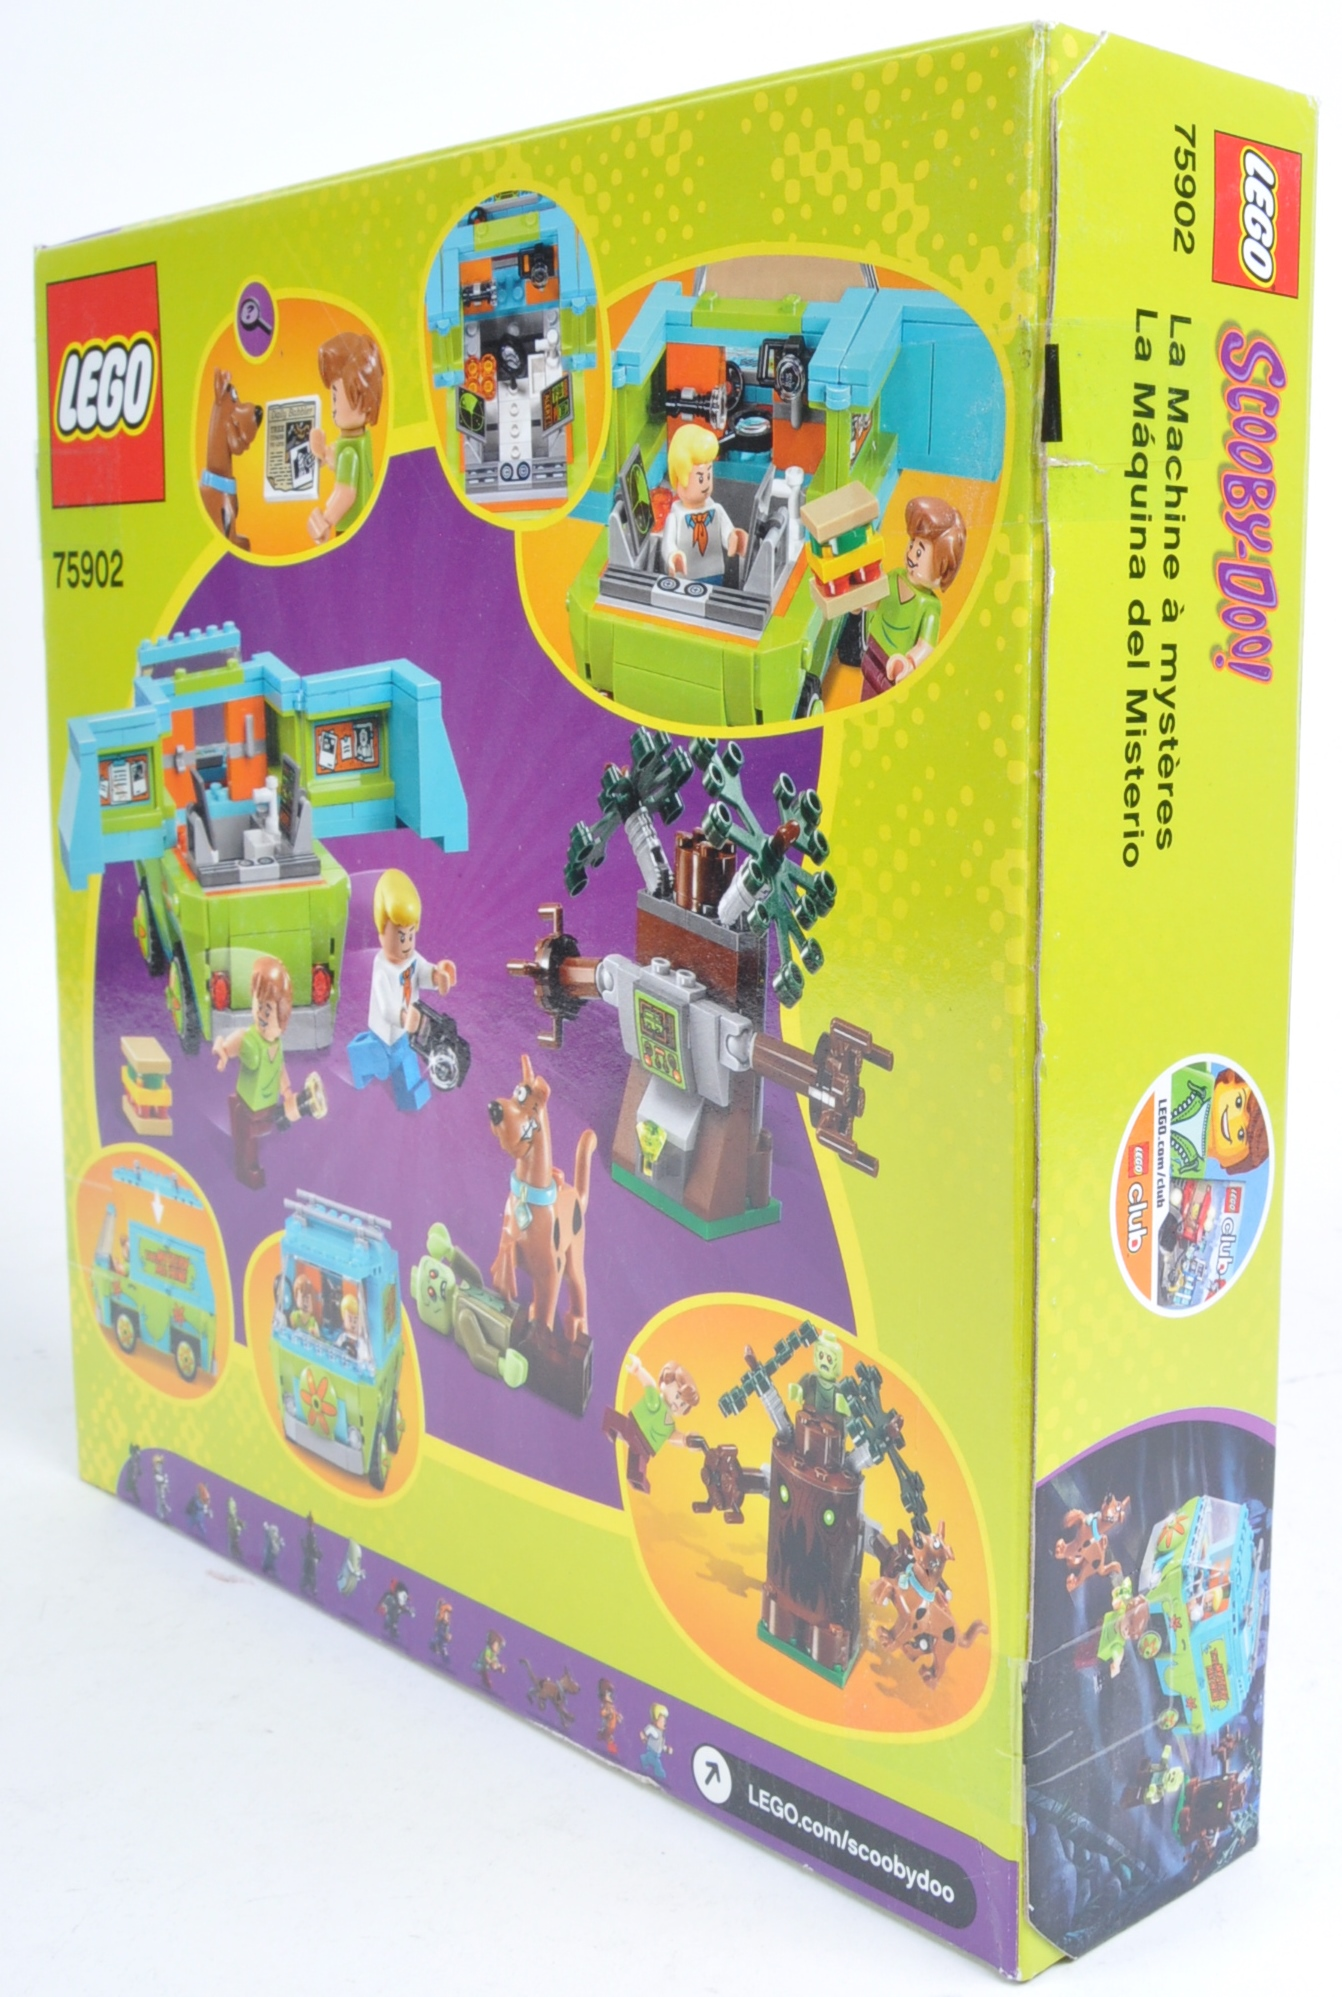 LEGO SET - SCOOBY DOO - 75902 - THE MYSTERY MACHINE - Image 3 of 4